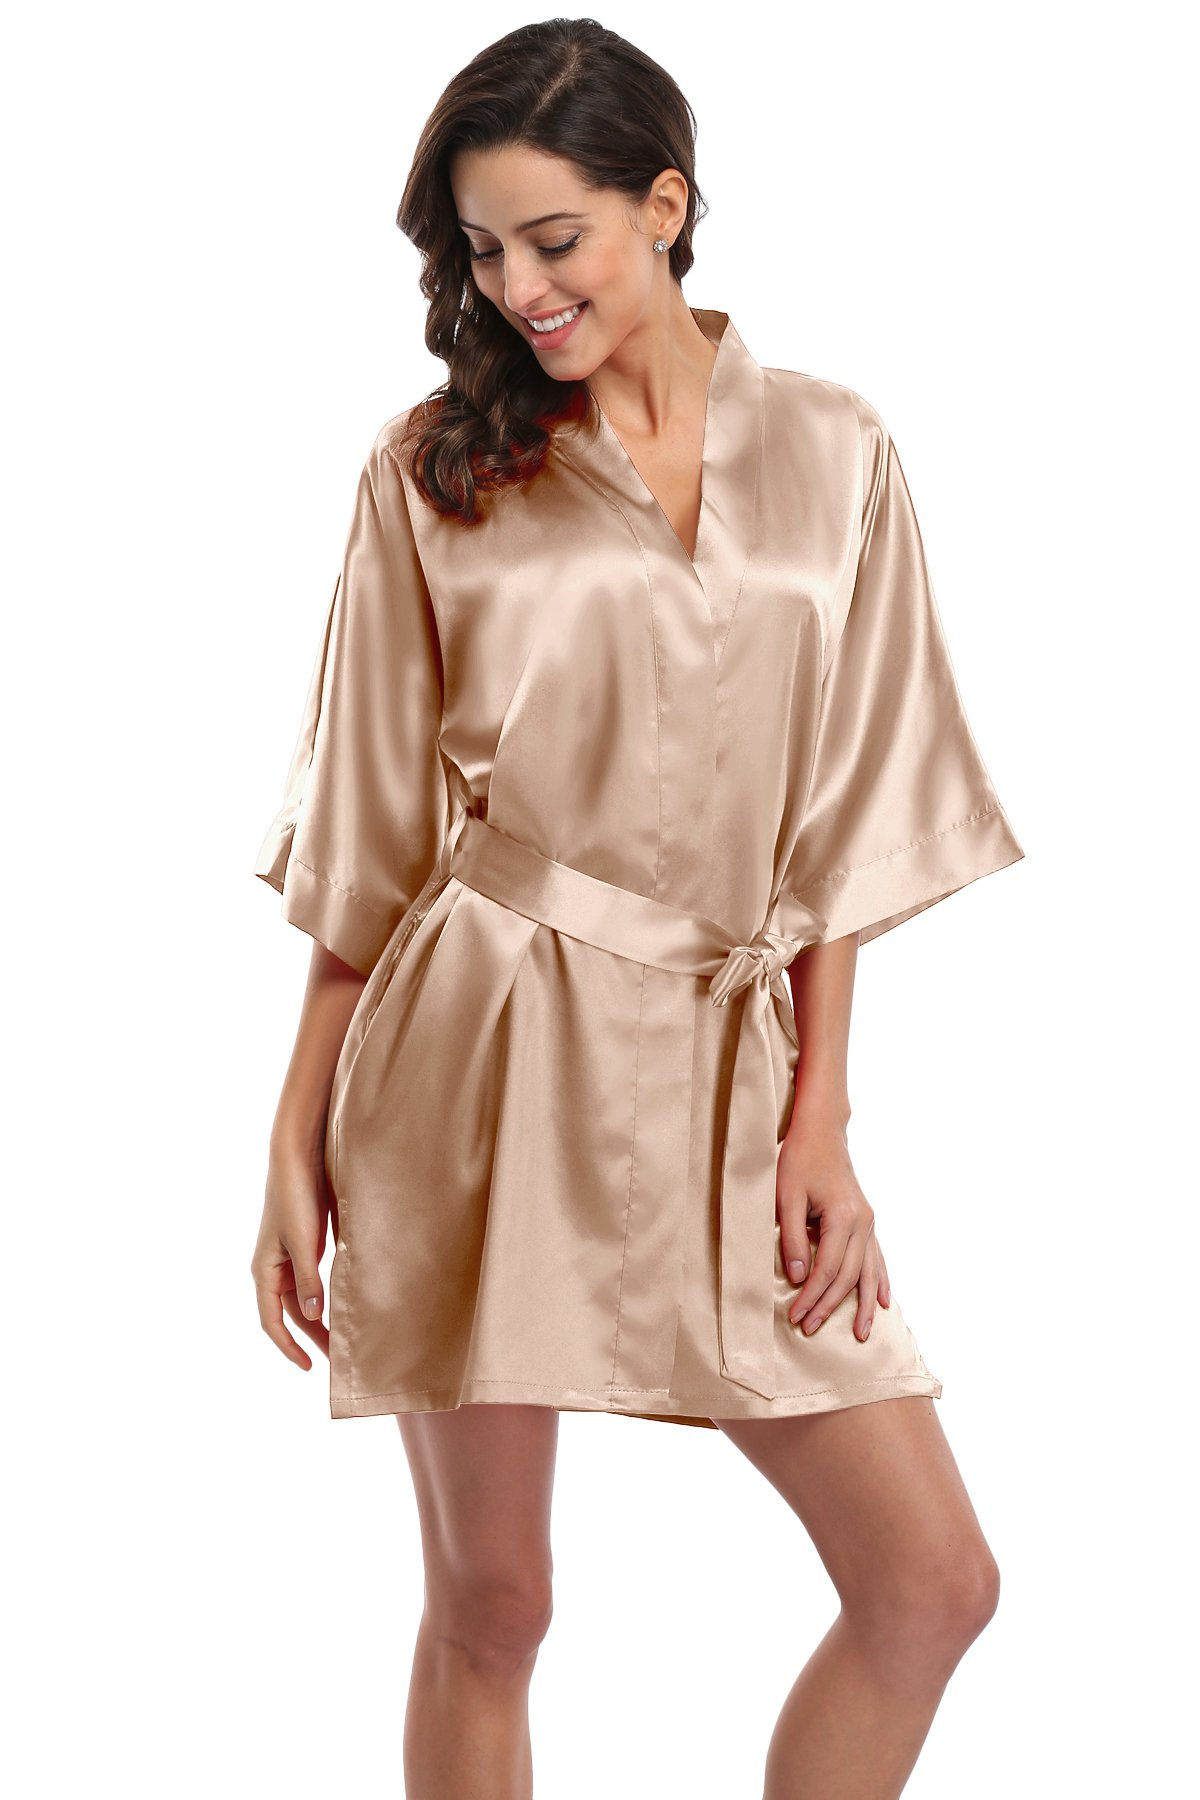 Details about  /Women/'s Satin Short Kimono Robe Solid Color Bridesmaid Robes Silky Bathrobe for